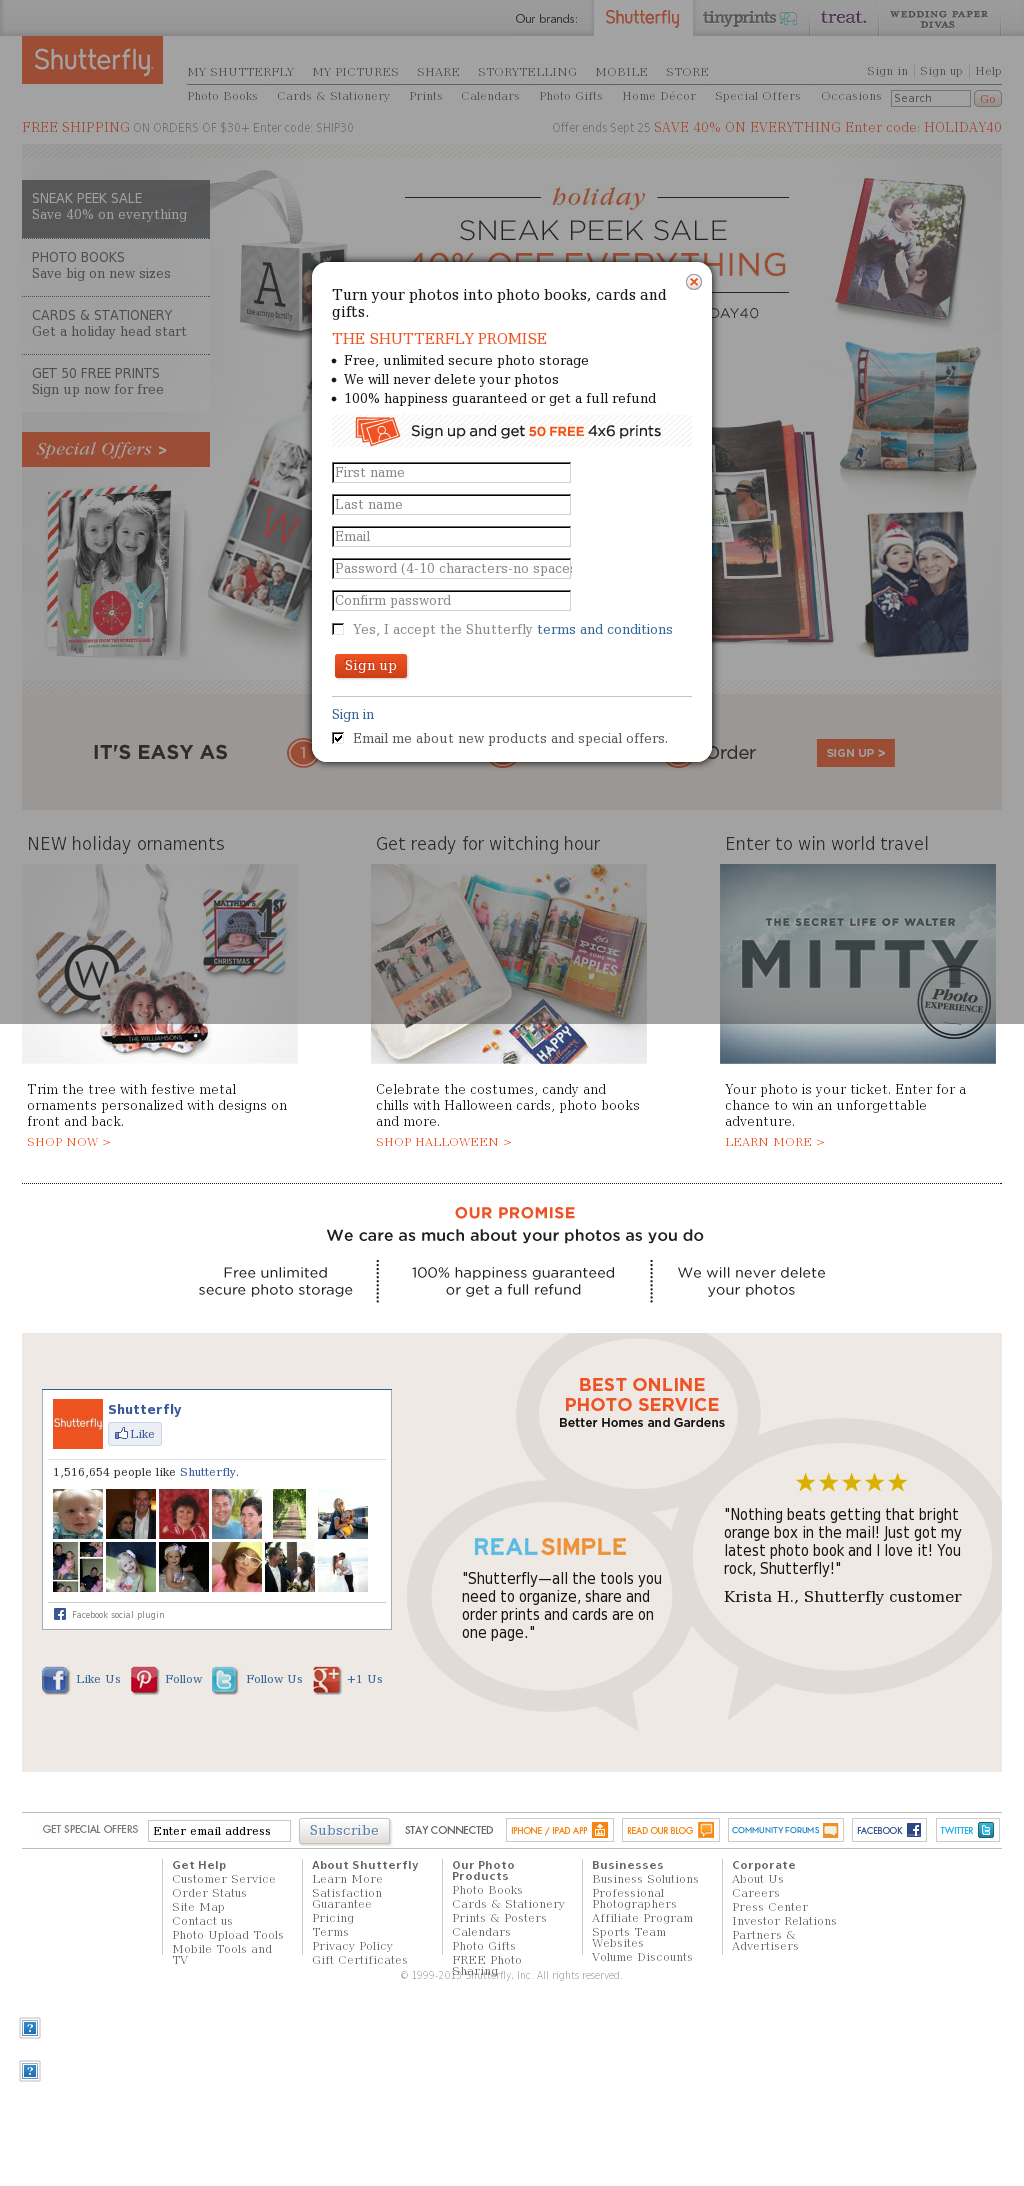 Shutterfly Competitors, Revenue and Employees - Owler Company Profile